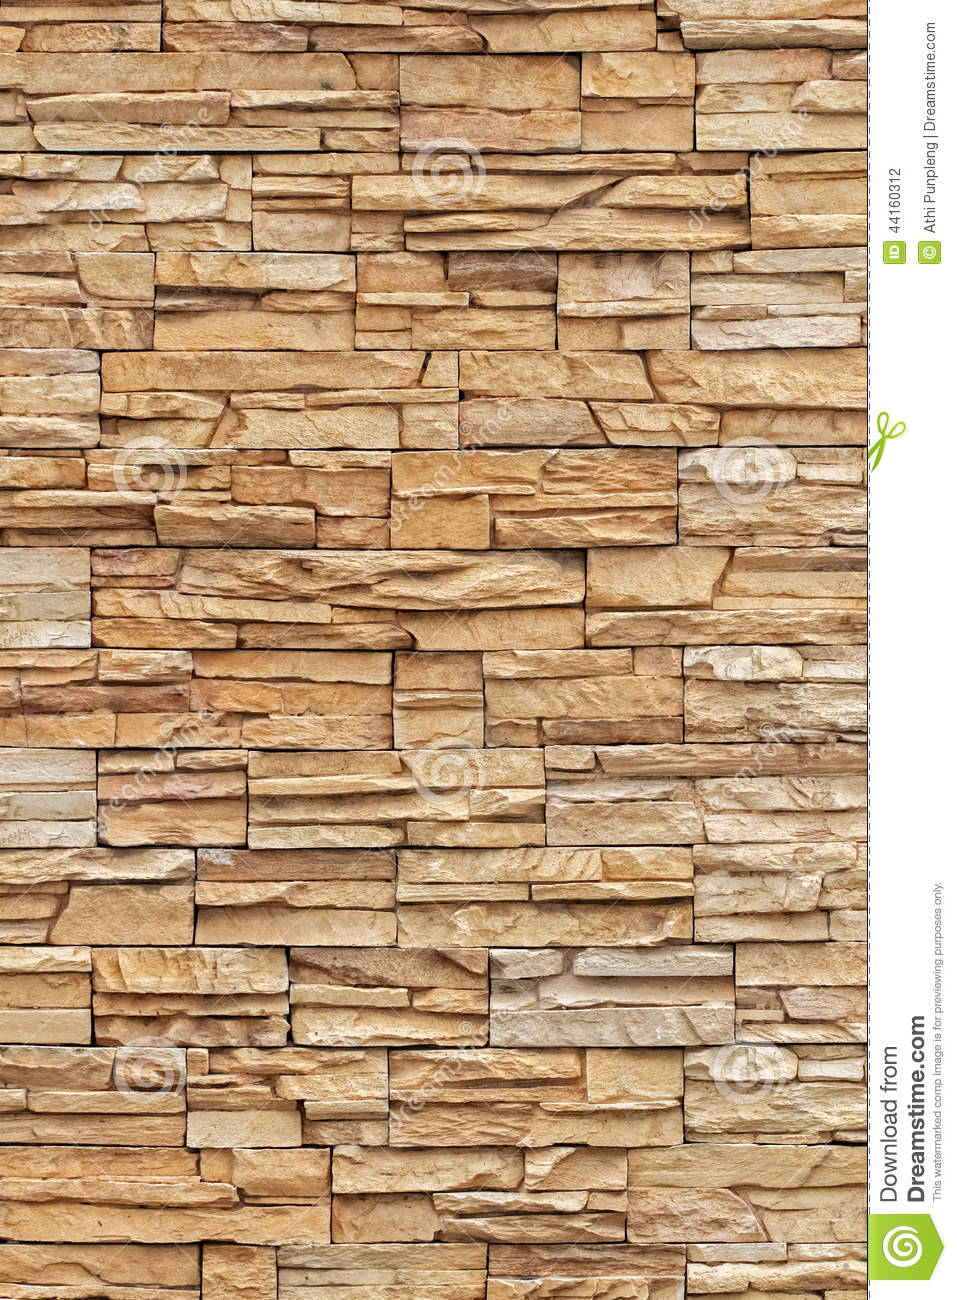 Brown Brick Textures And Background Vertical Pattern Stock Photo Image 44160312